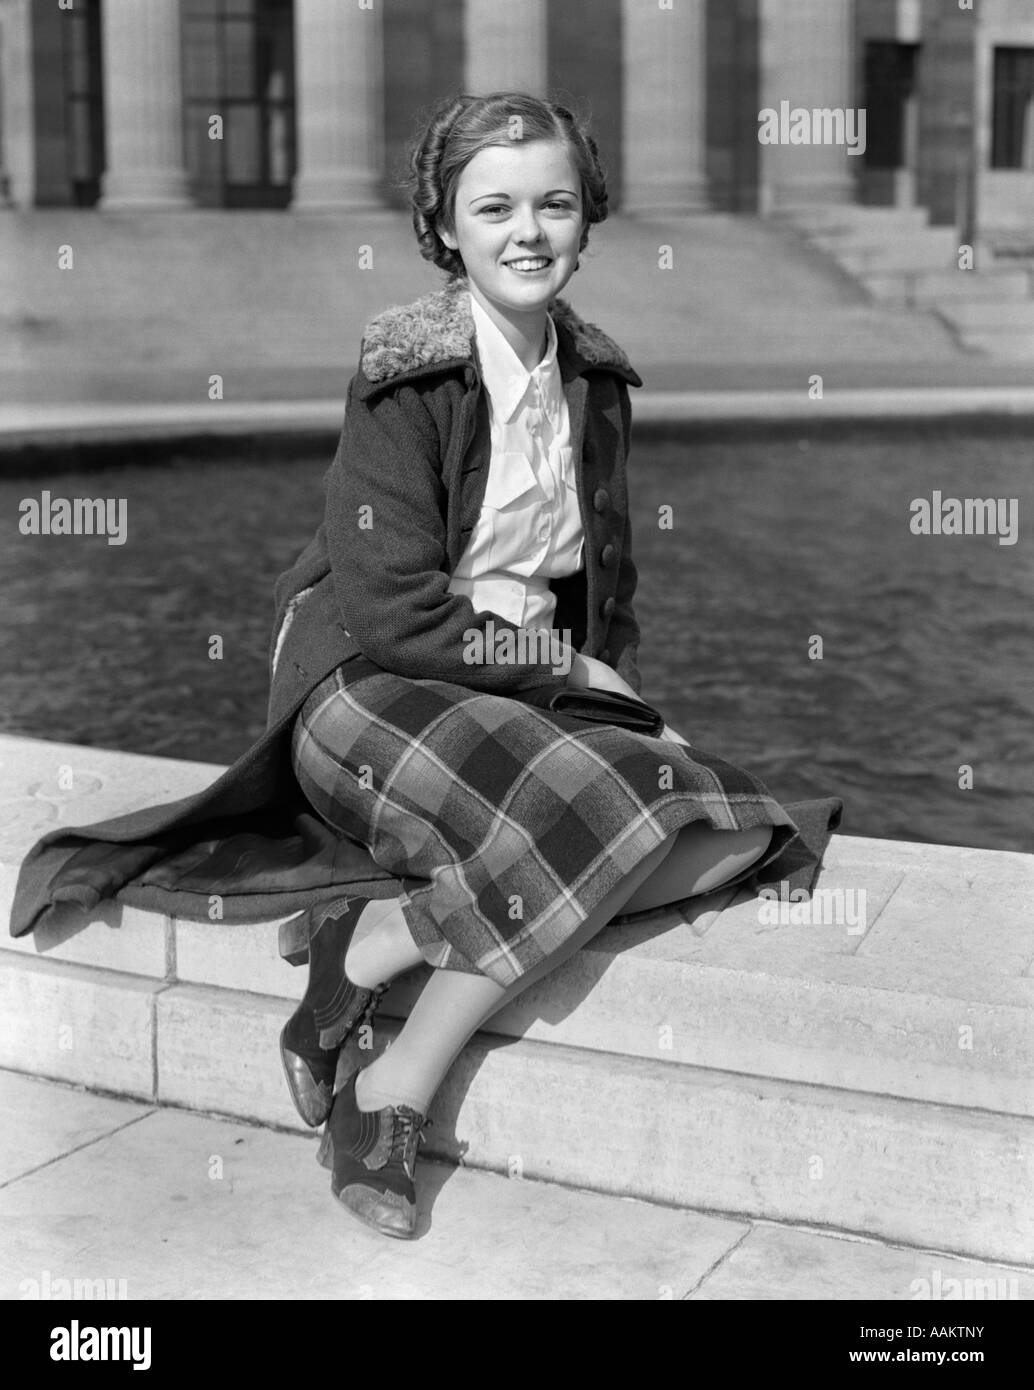 1930s SMILING TEEN GIRL SITTING AUTUMN CLOTHES Stock Photo